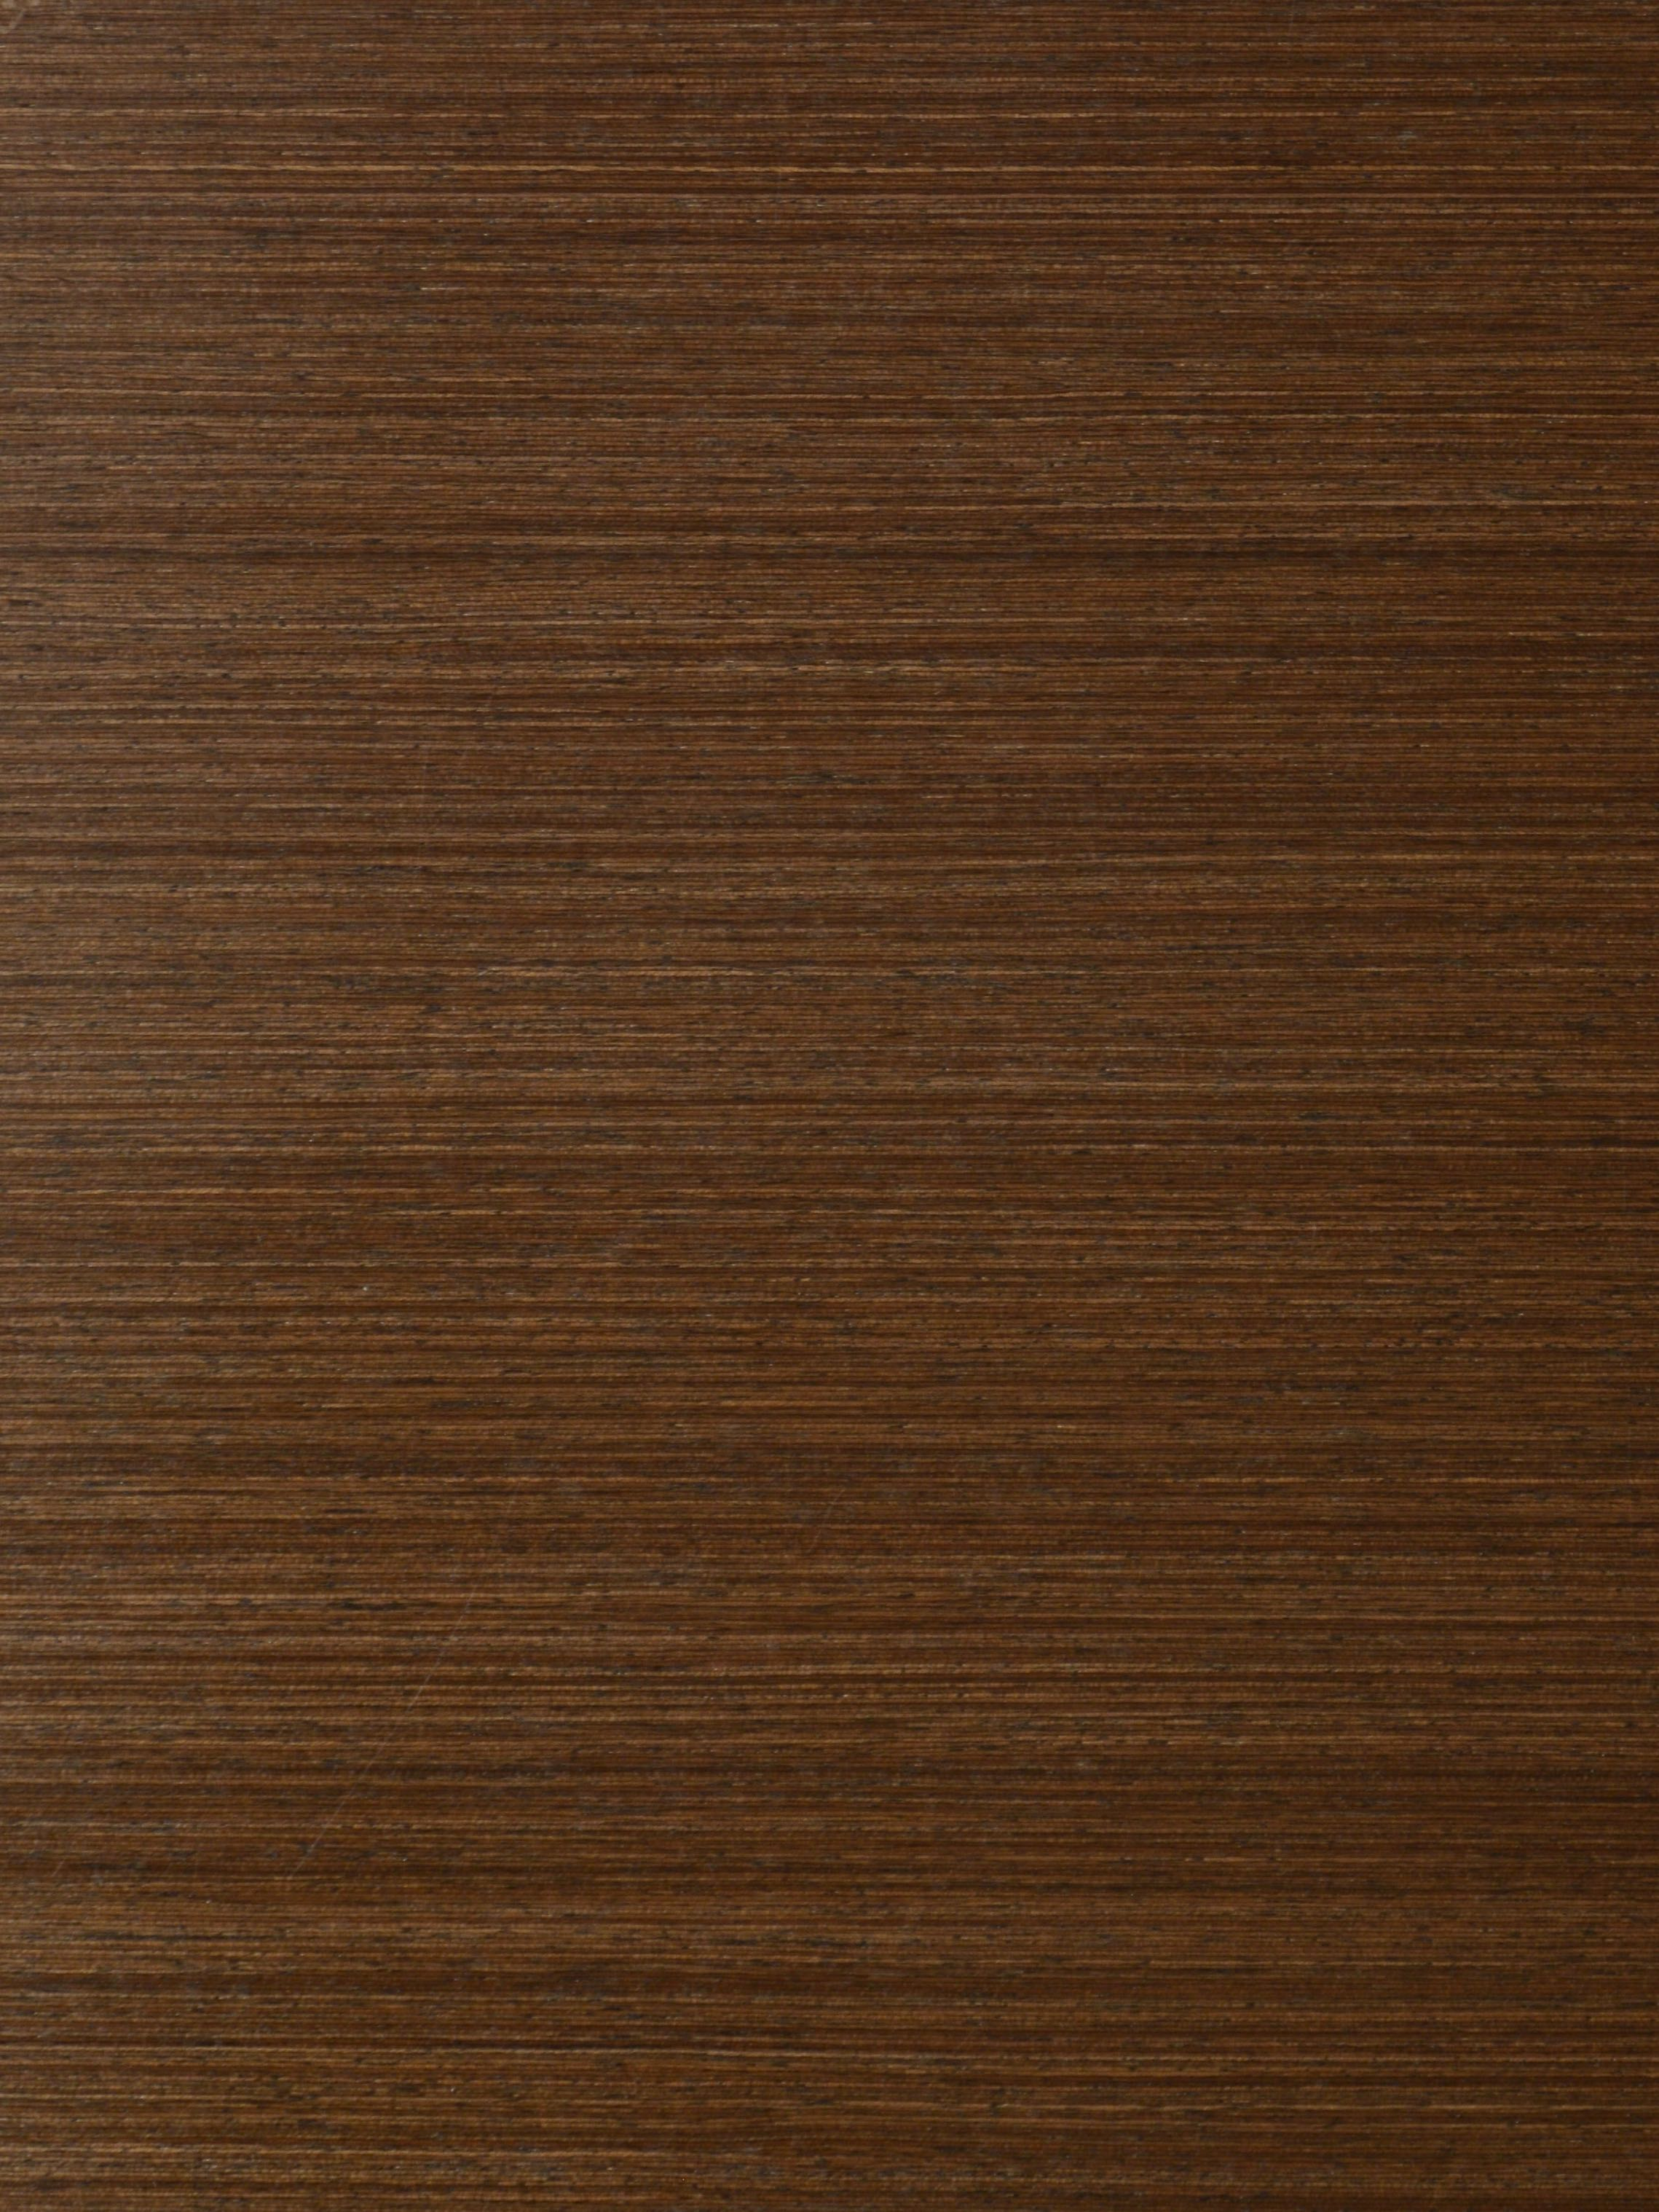 Recon Veneer Quartered Wenge Kitchen Cabinet Door